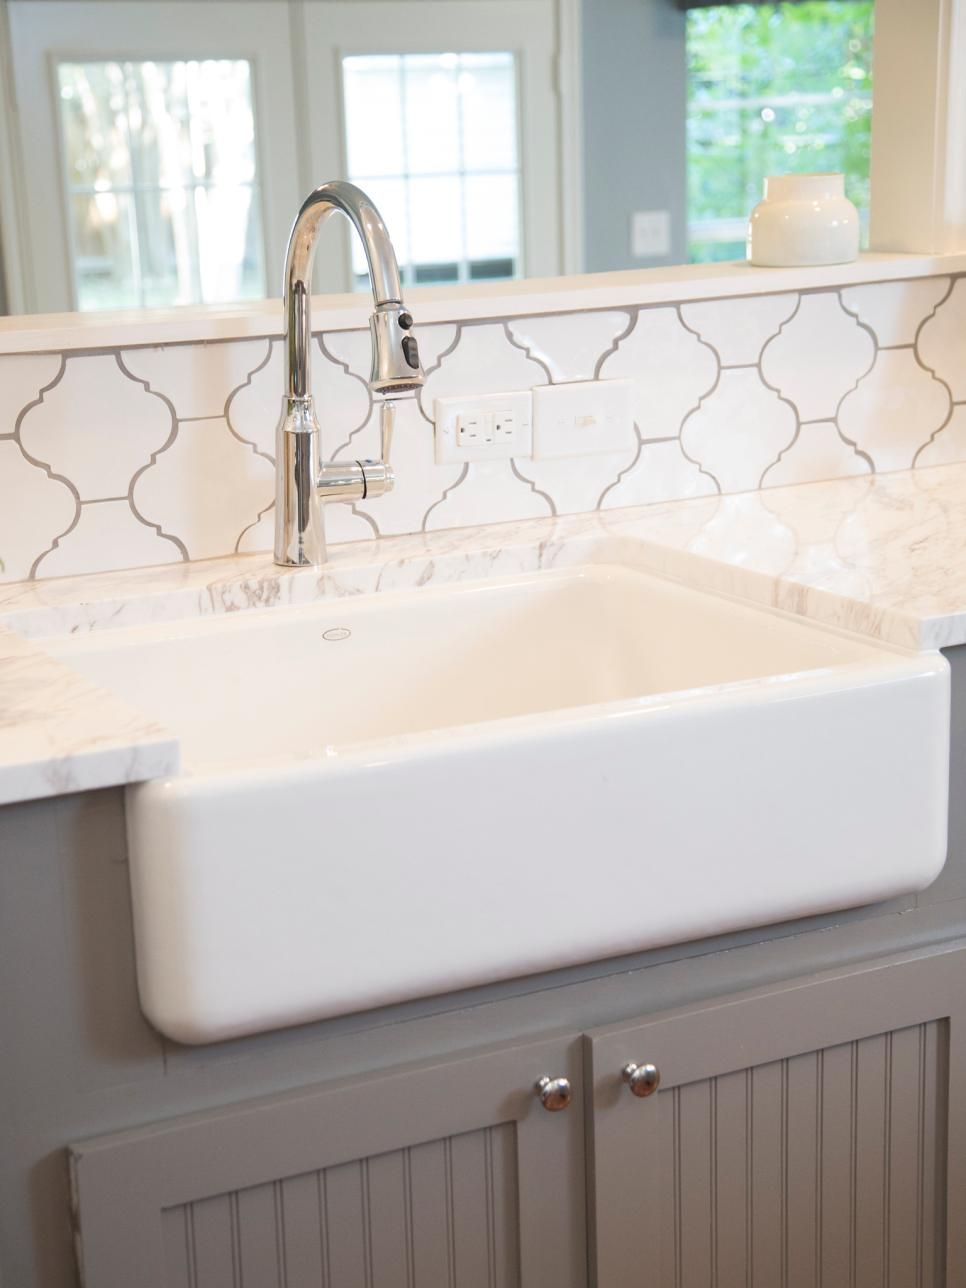 Kitchen makeover ideas from fixer upper marble countertops a moroccan tile backsplash carrara marble countertops and a farmhouse sink add charming character to dailygadgetfo Gallery